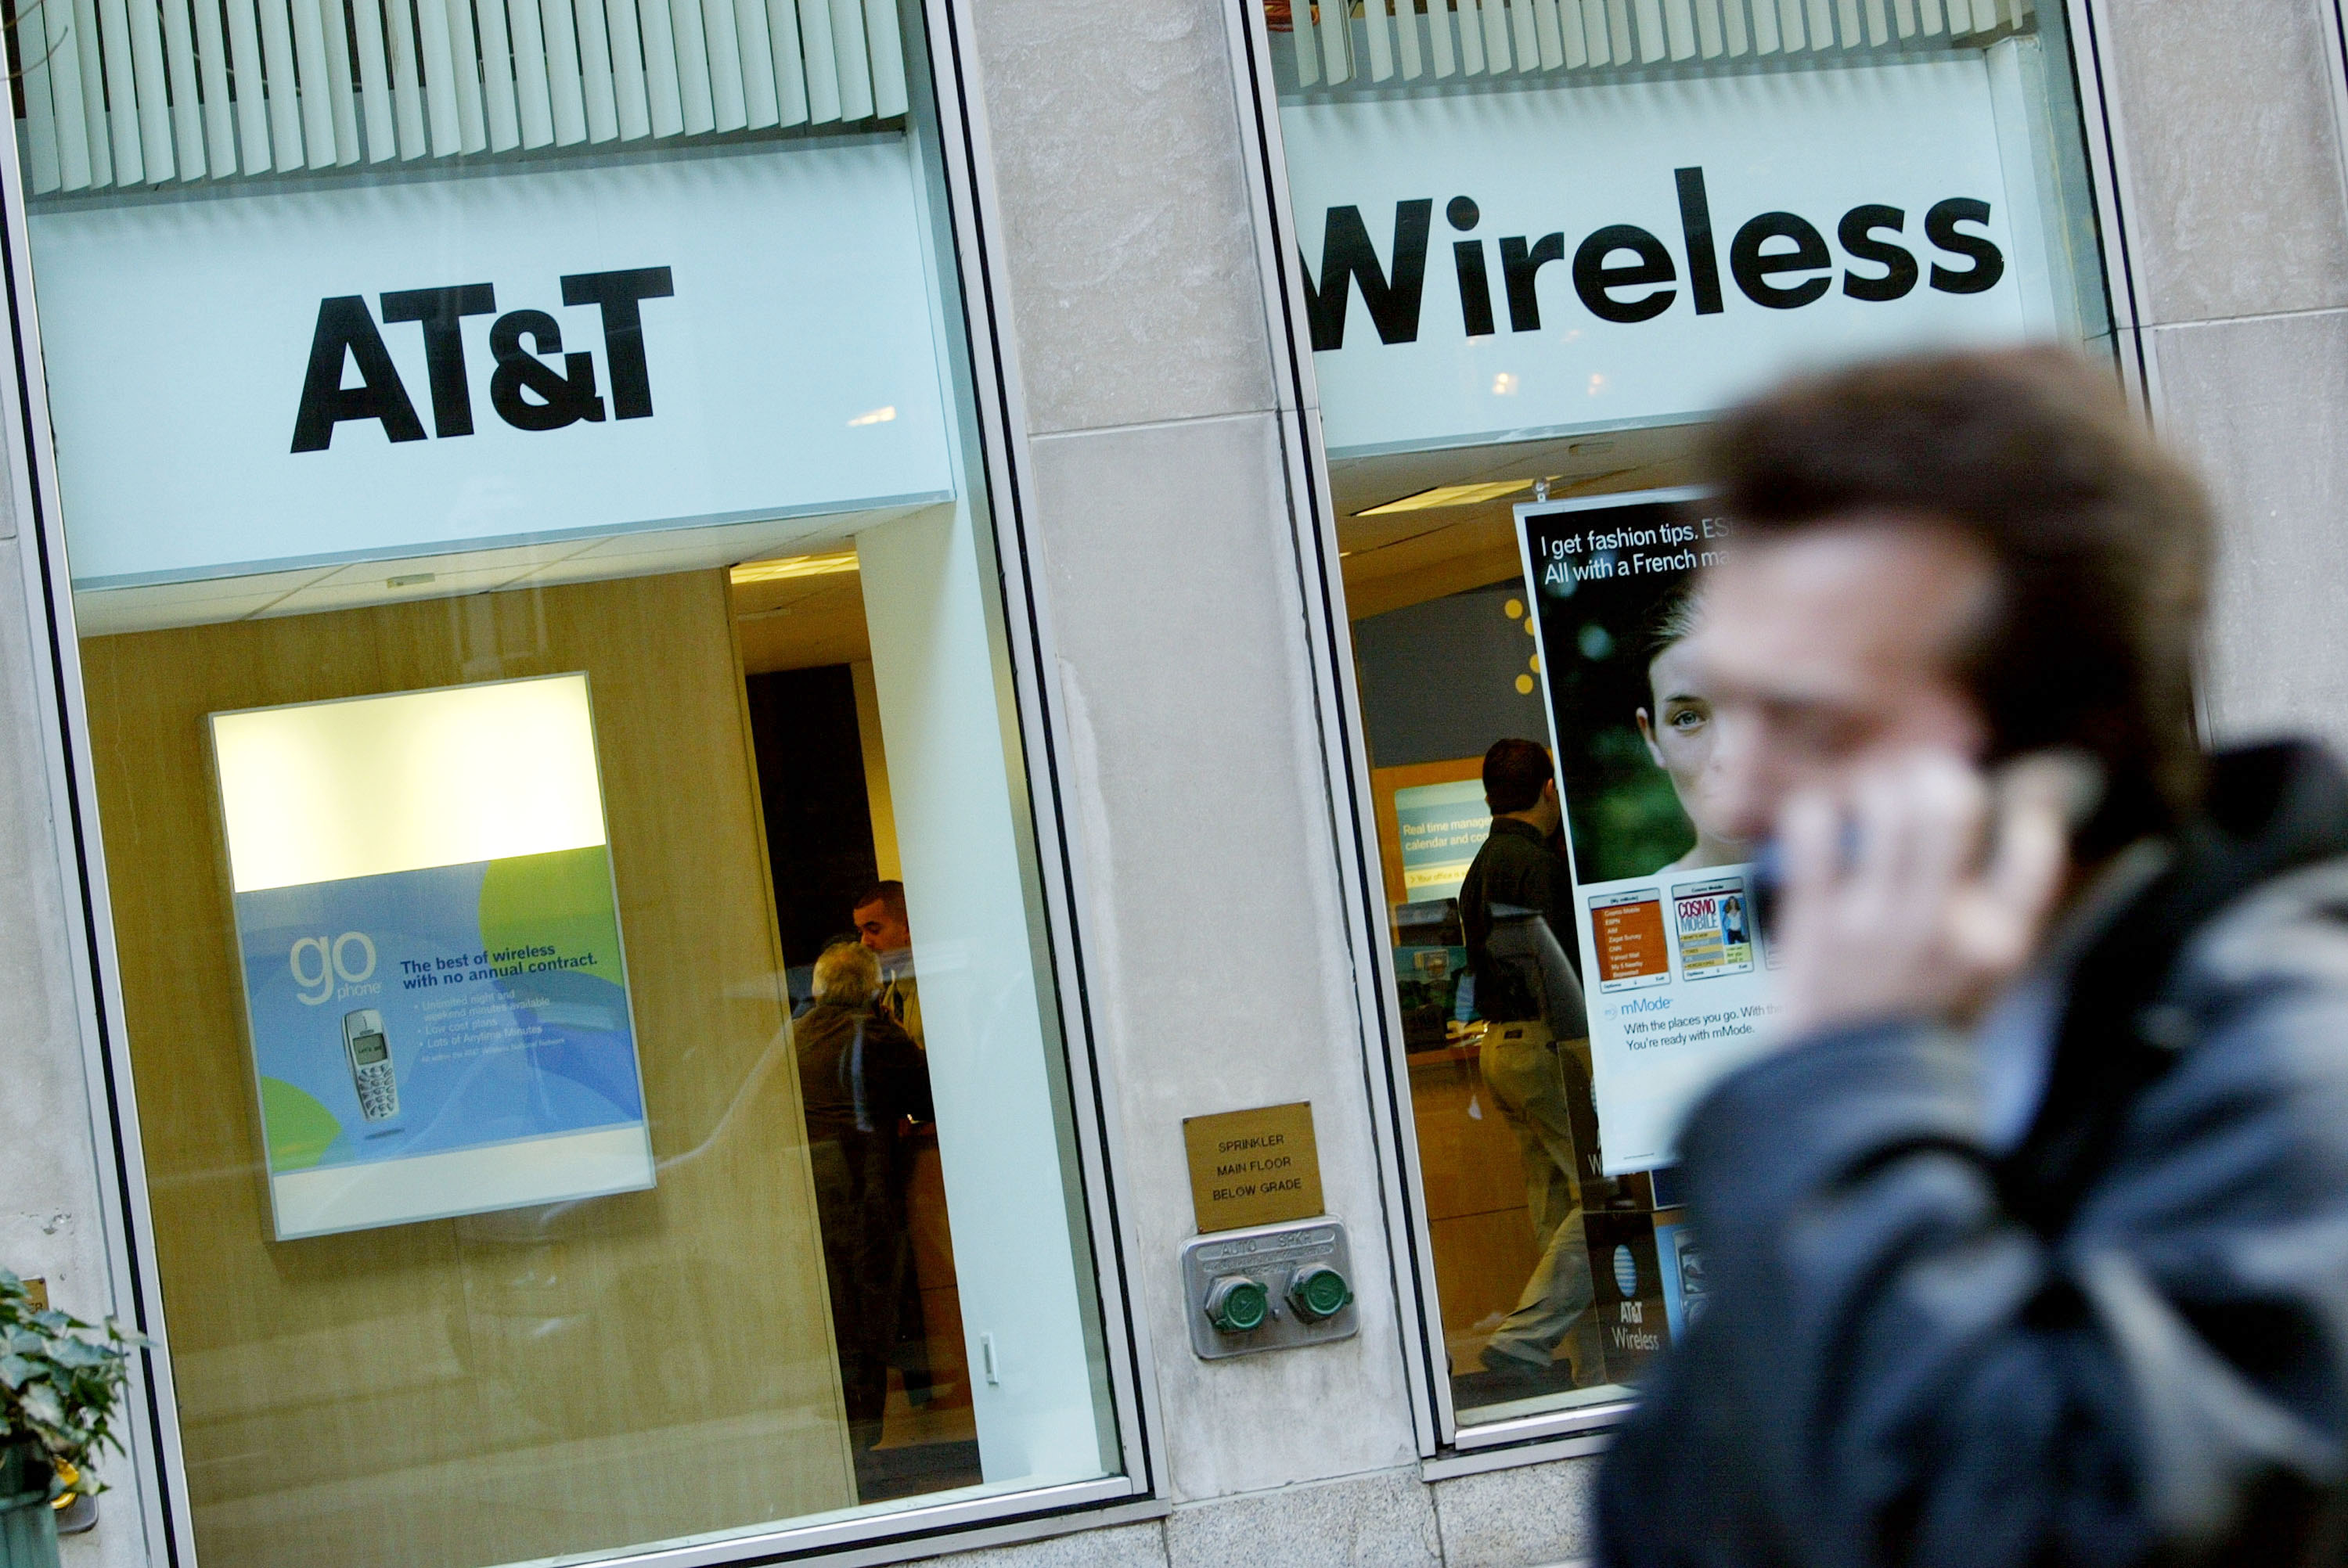 A person on a cell phone walks past an AT&T Wireless store in New York City. (Getty)